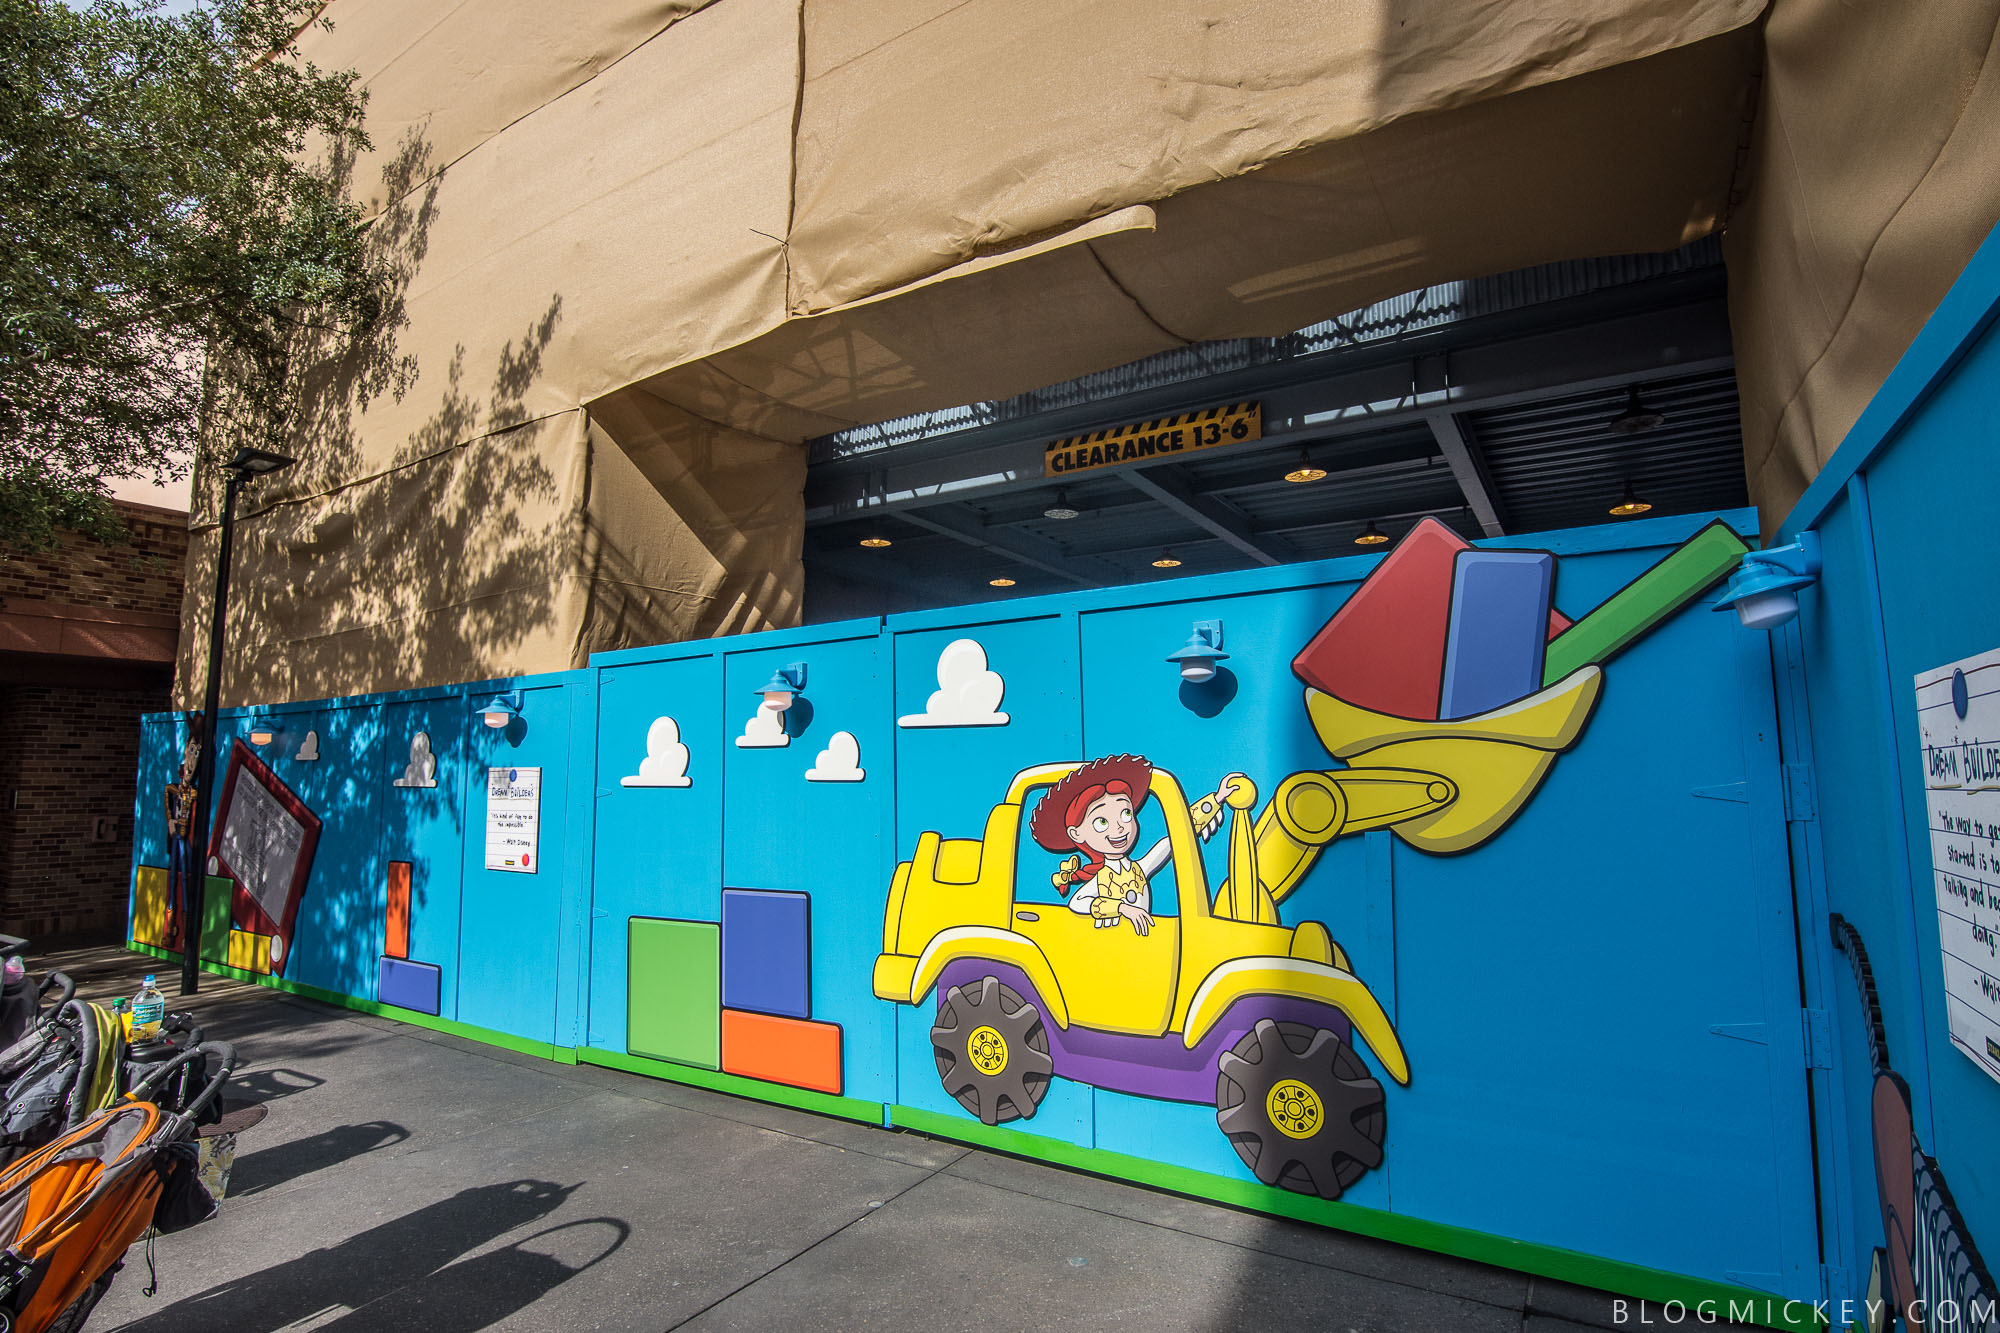 Photos toy story land logo and characters appear on construction of course the best thing about the wall is all of the toy story characters in various stages of construction themselves amipublicfo Image collections